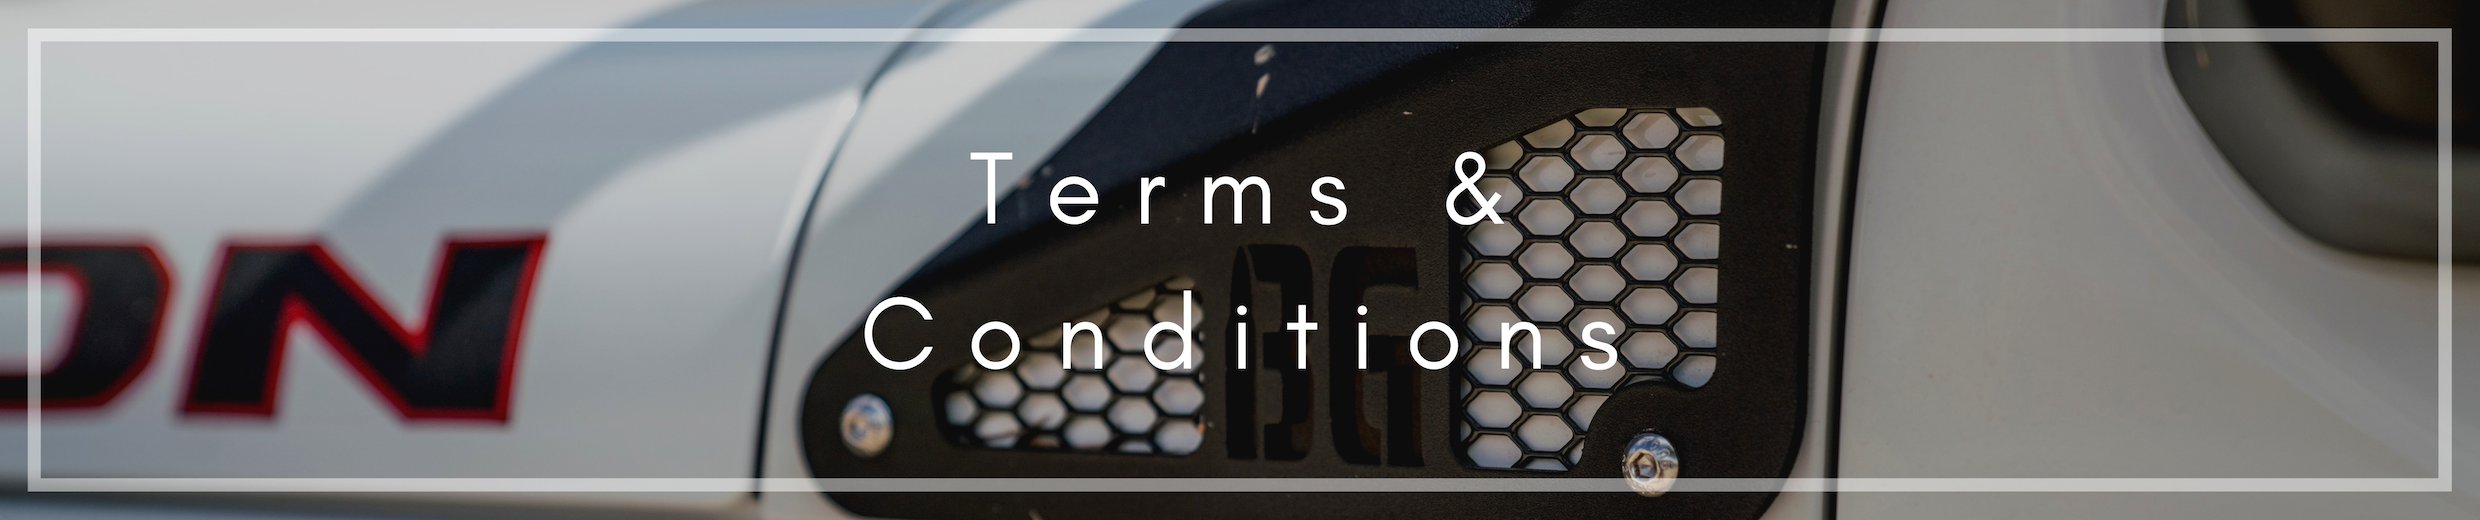 terms-conditions-banner.png